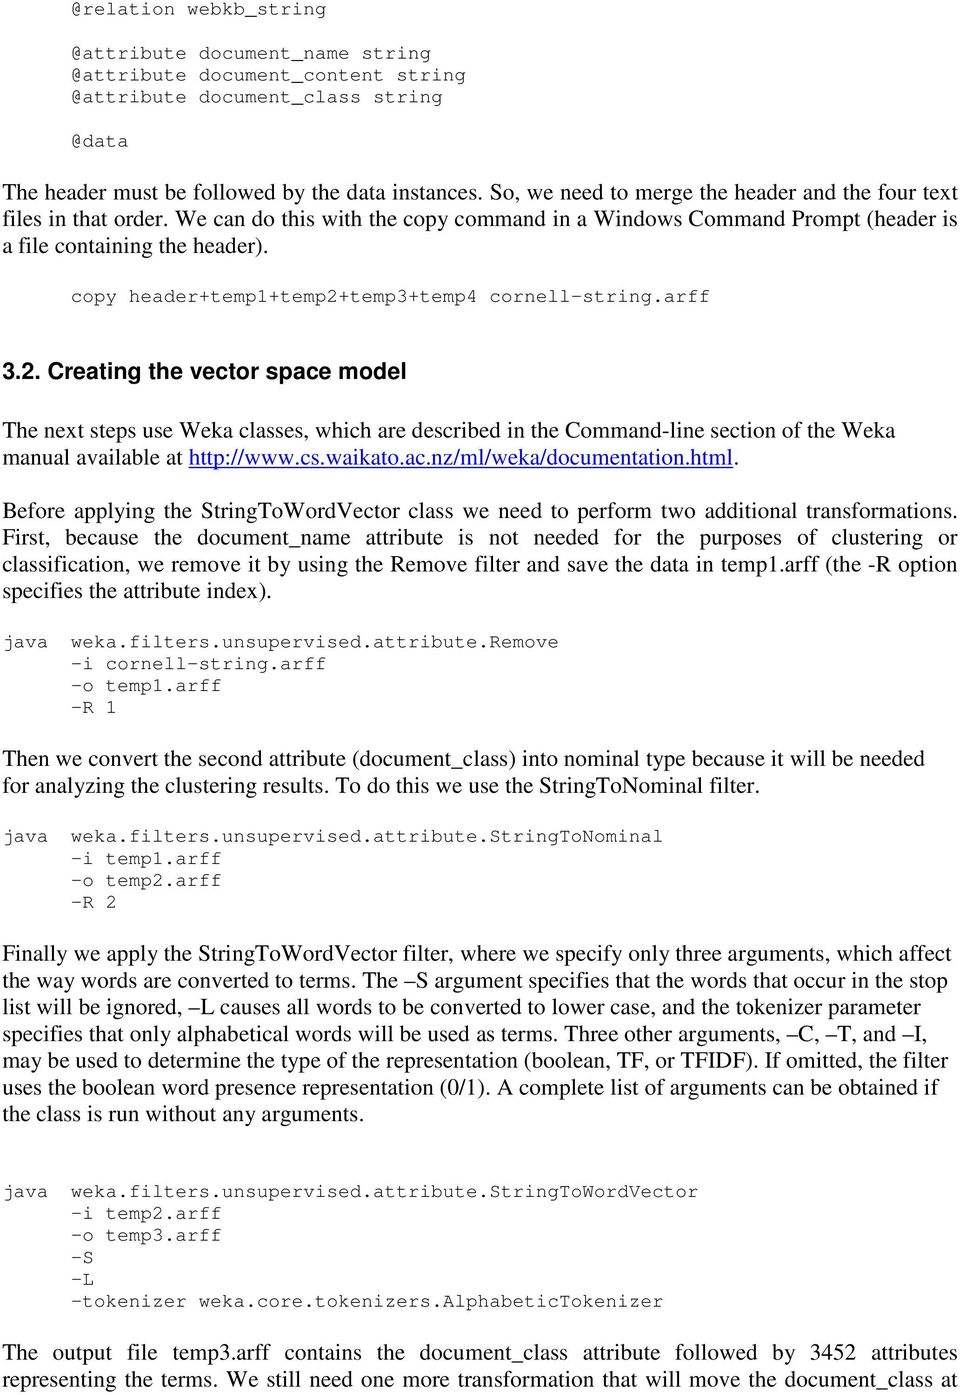 copy header+temp1+temp2+temp3+temp4 cornell-string.arff 3.2. Creating the vector space model The next steps use Weka classes, which are described in the Command-line section of the Weka manual available at http://www.